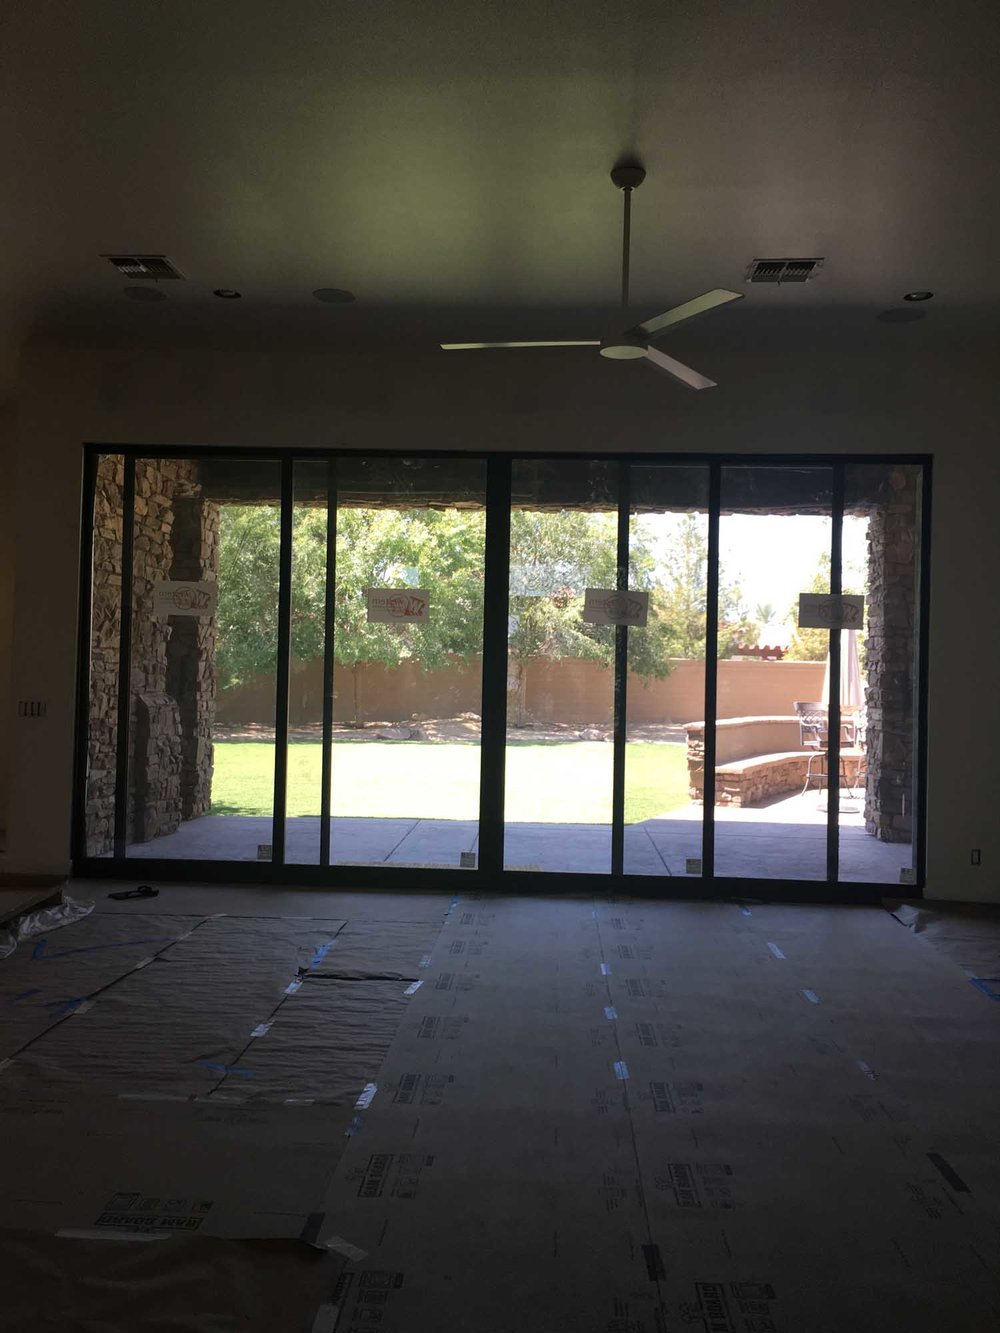 Ongoing renovation of room with wide sliding glass doors